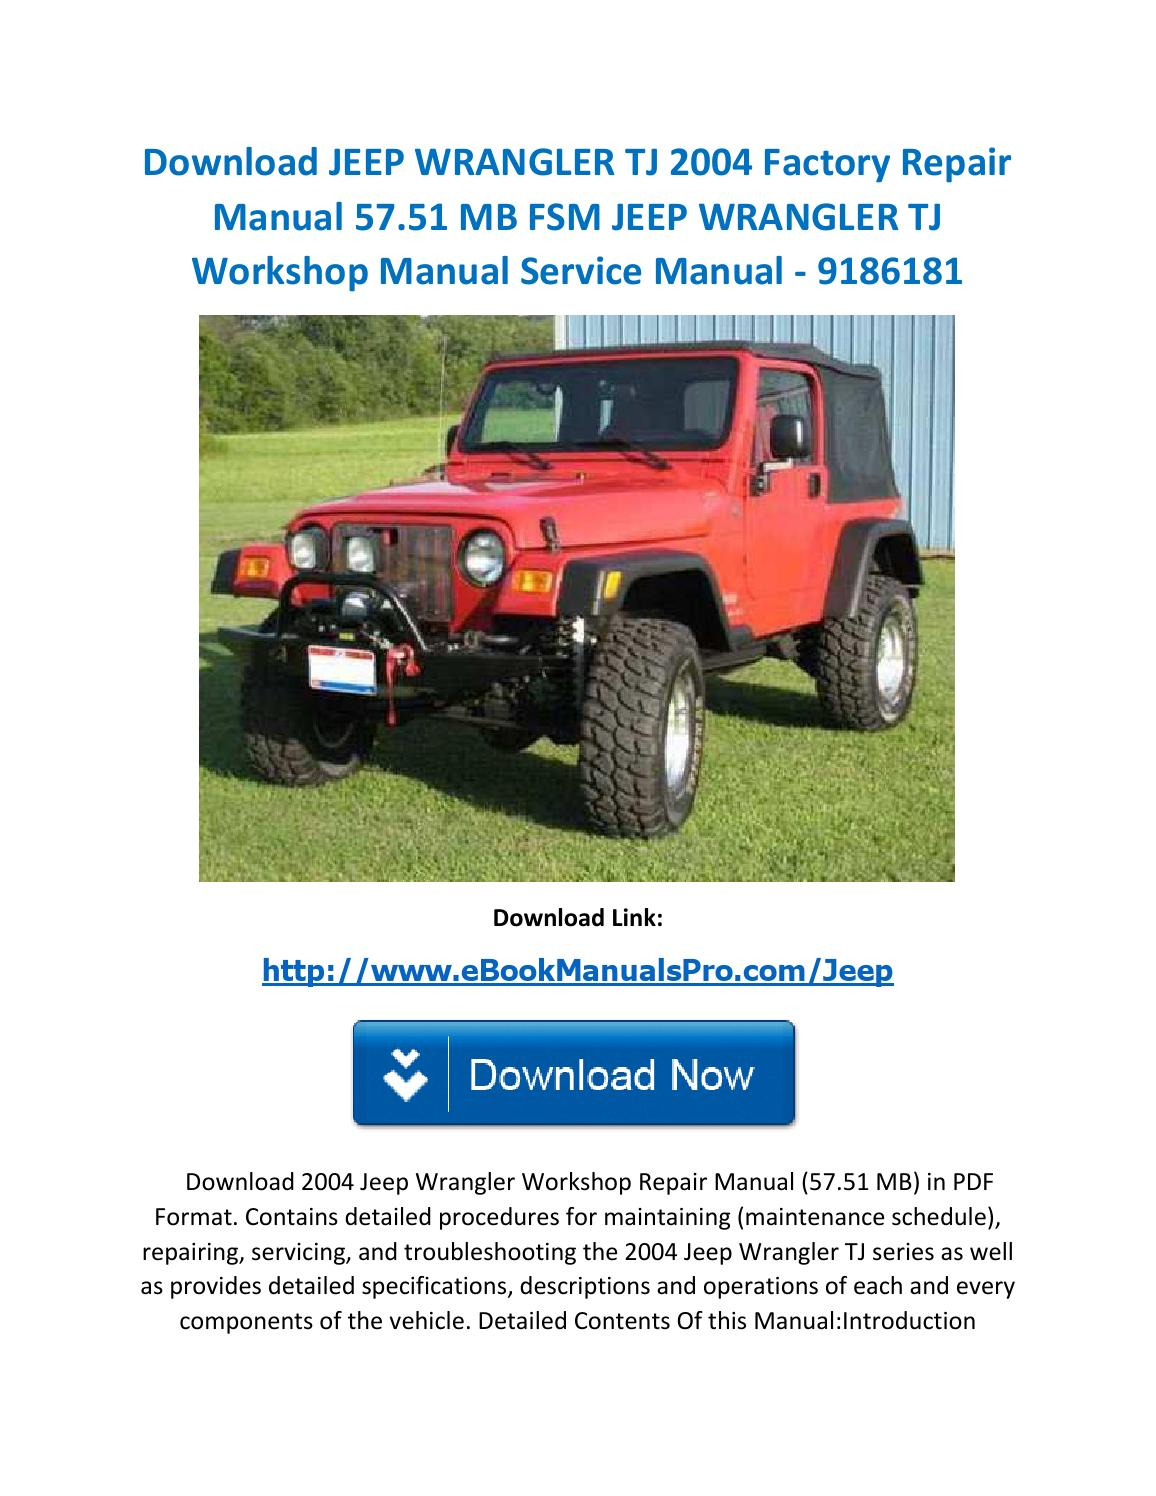 Download jeep wrangler tj 2004 factory repair manual 57 51 mb fsm jeep  wrangler tj workshop manual s by karl casino - issuu